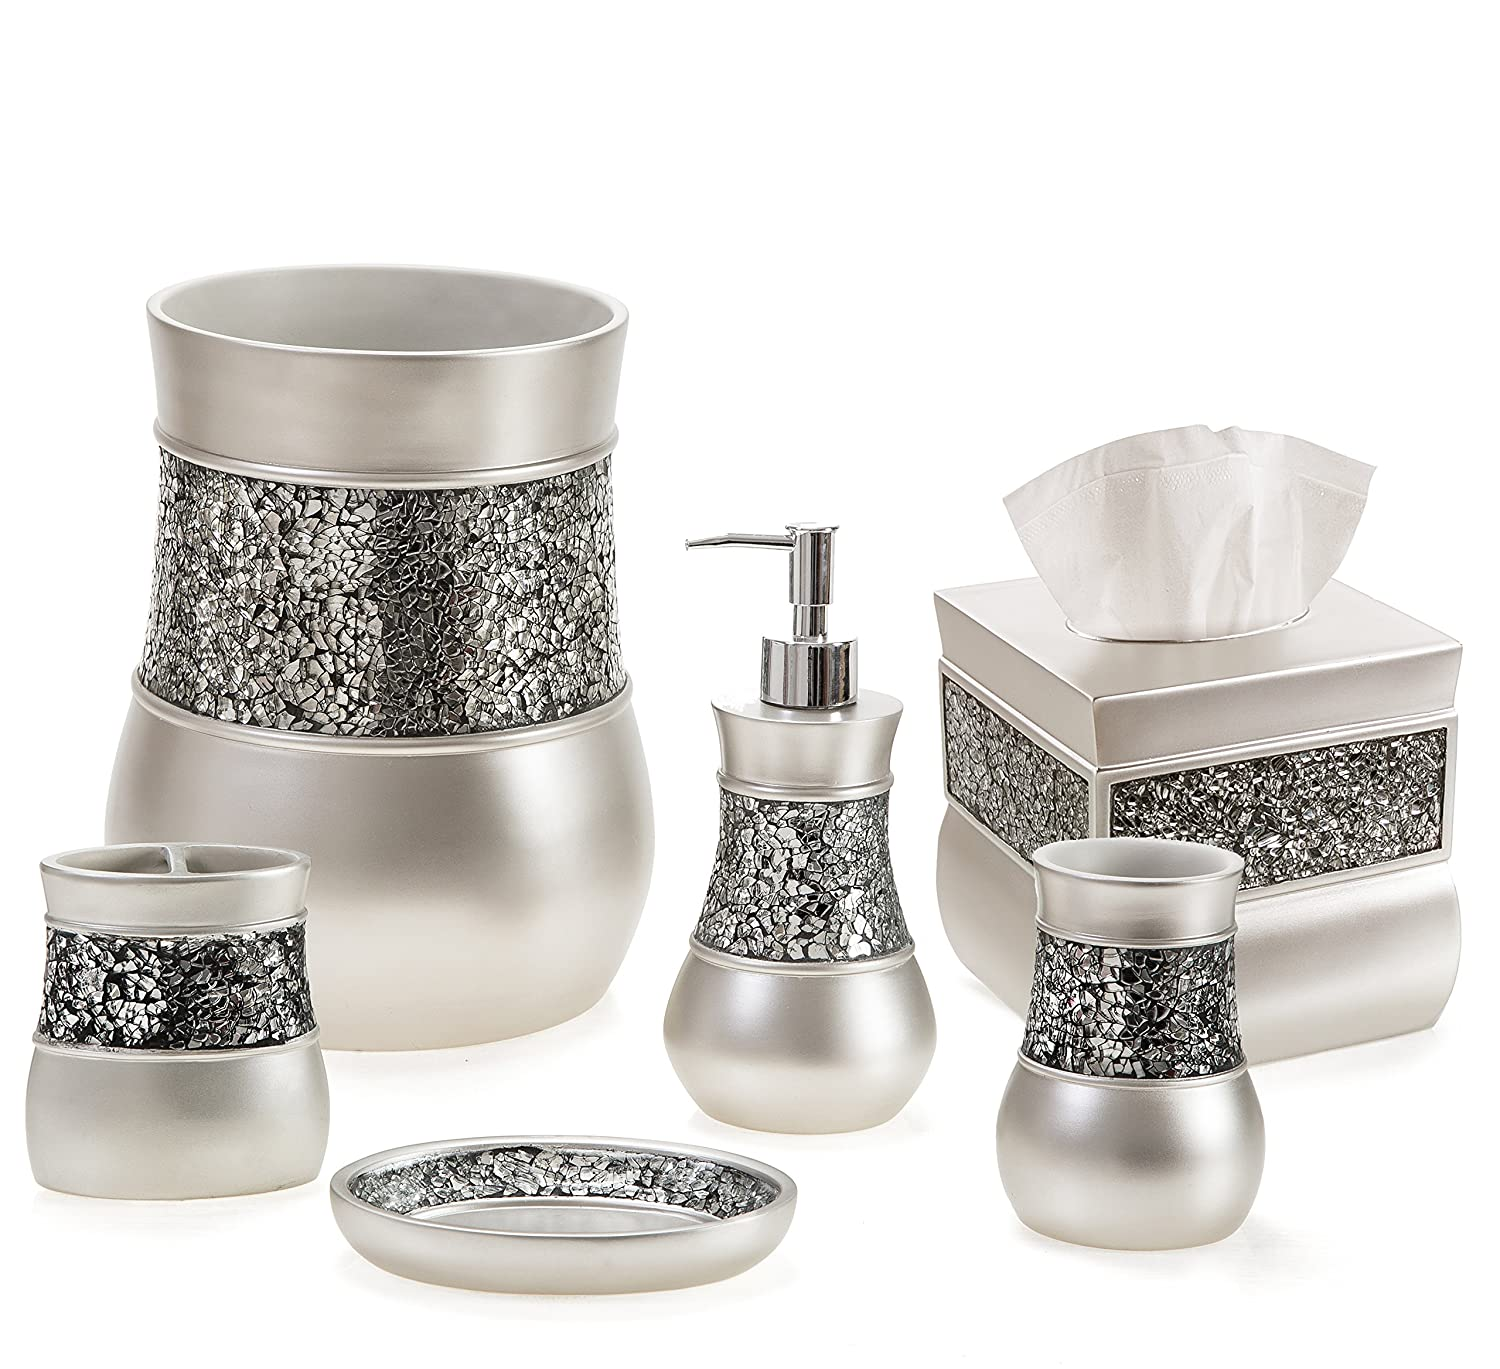 Nickel bathroom accessories - Amazon Com Creative Scents Brushed Nickel Bathroom Accessories Set 4 Piece Bath Ensemble Bath Set Collection Features Soap Dispenser Pump